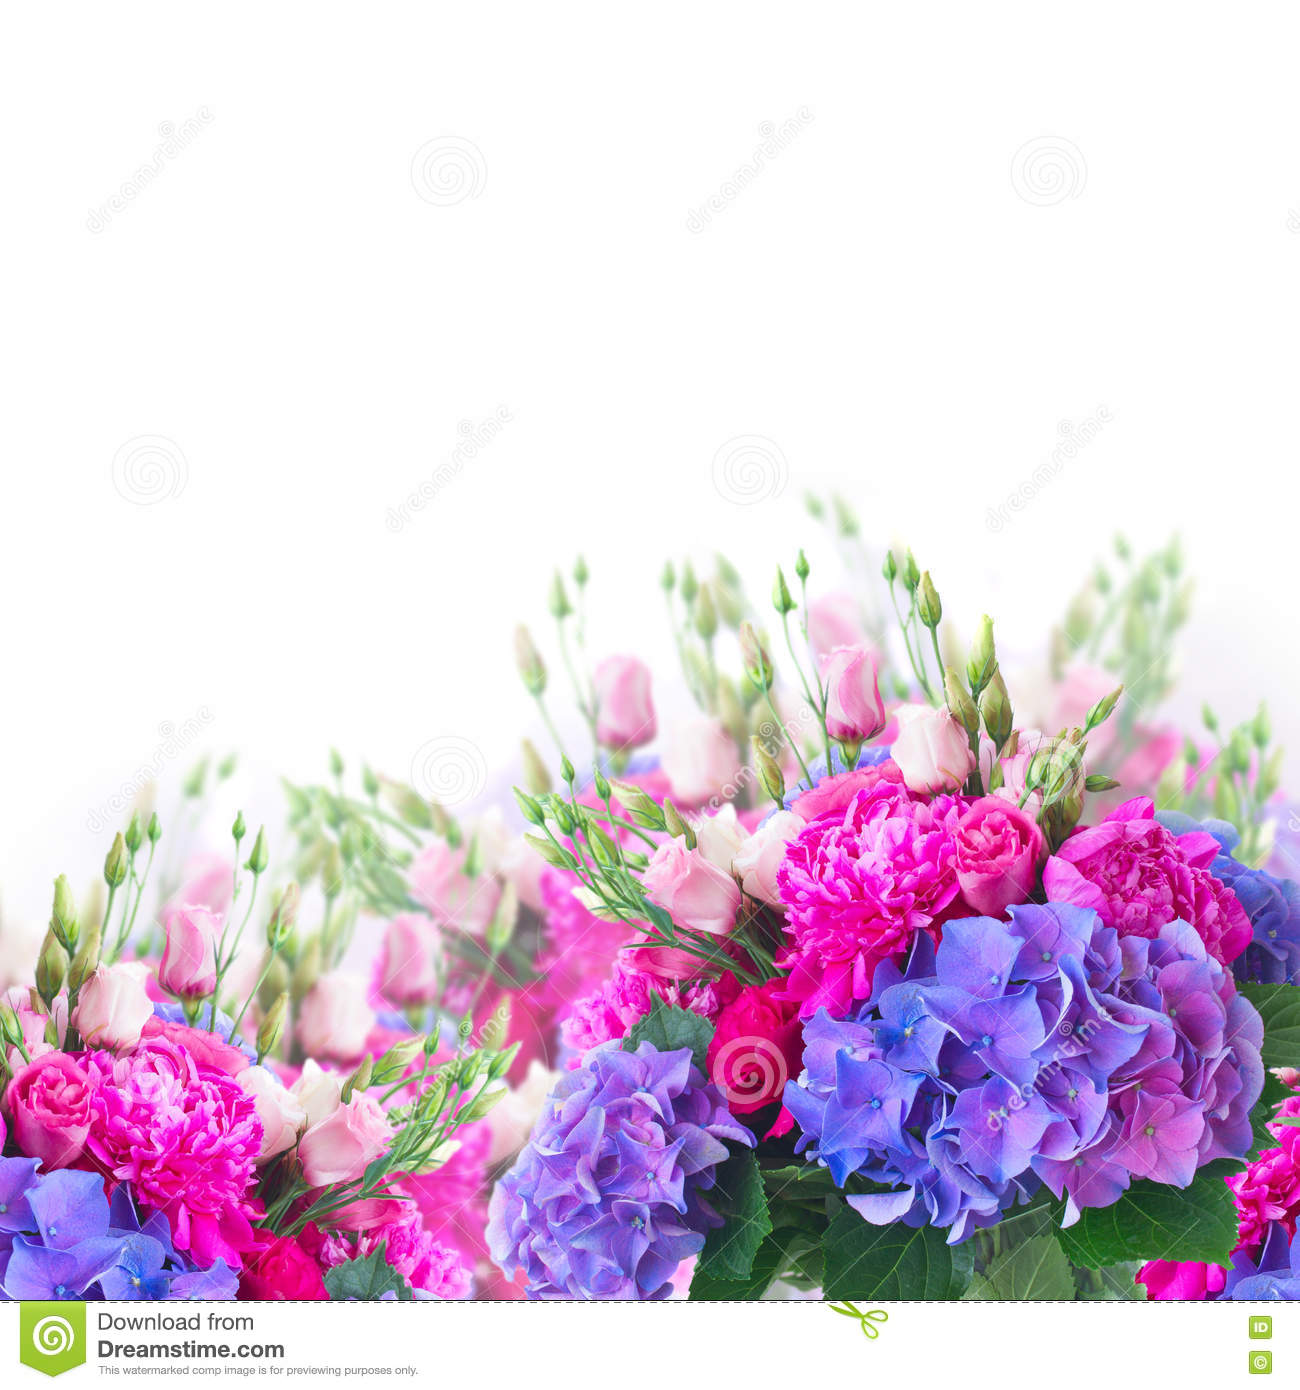 Bright pink and blue flowers stock image image of arrangement bright pink and blue flowers izmirmasajfo